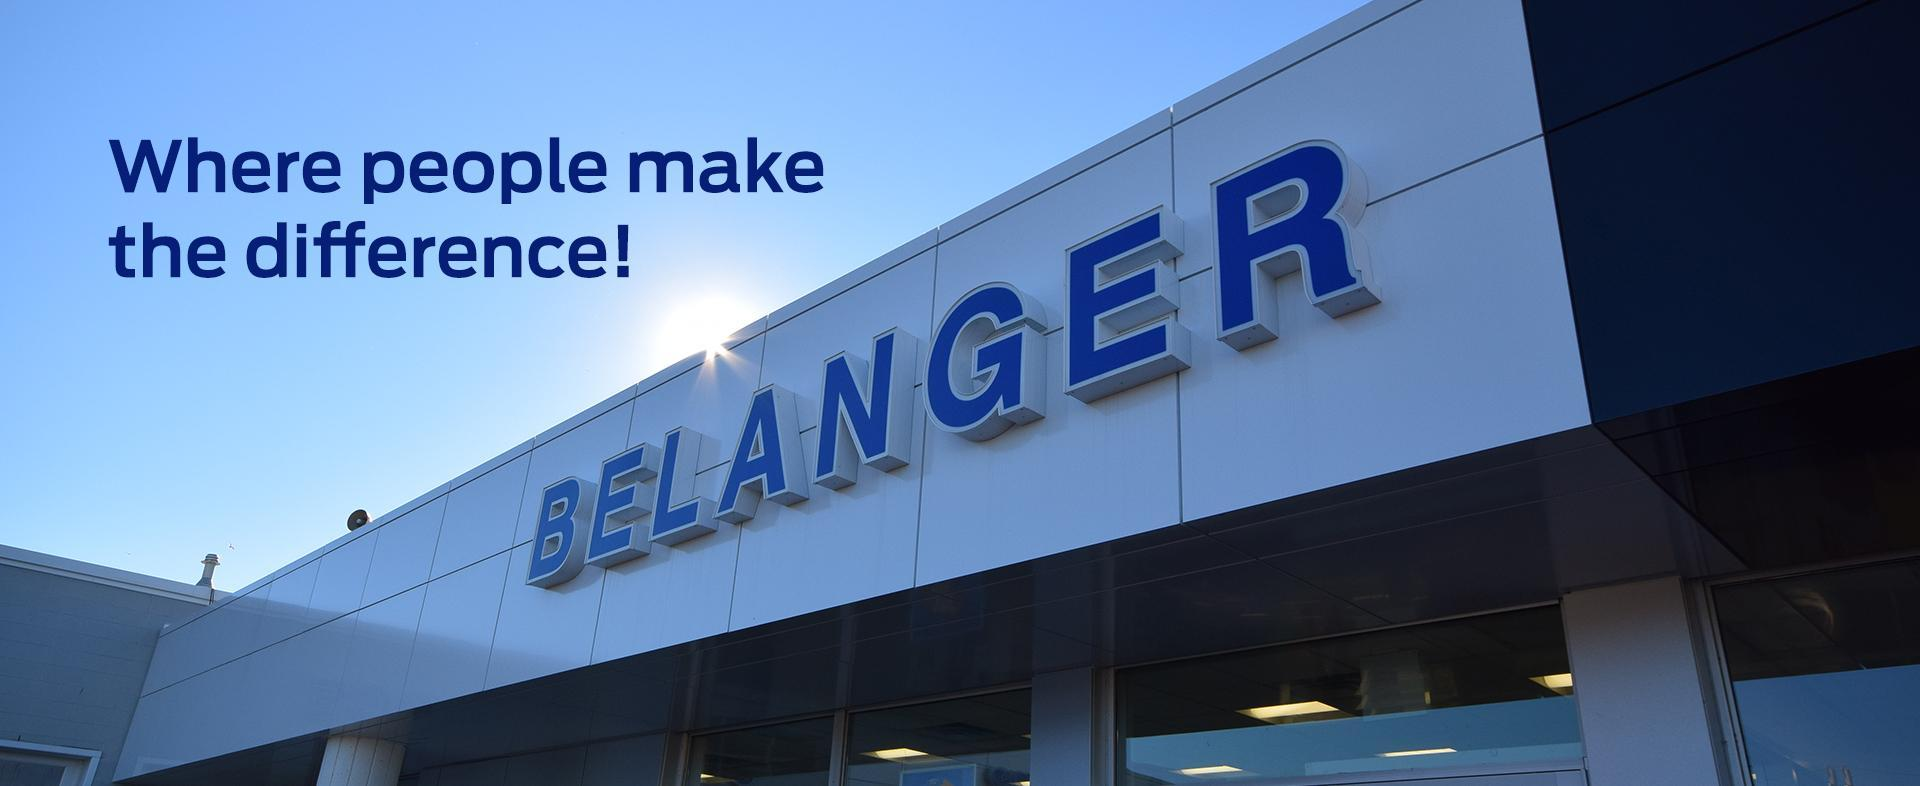 Belanger Ford Dealership Image